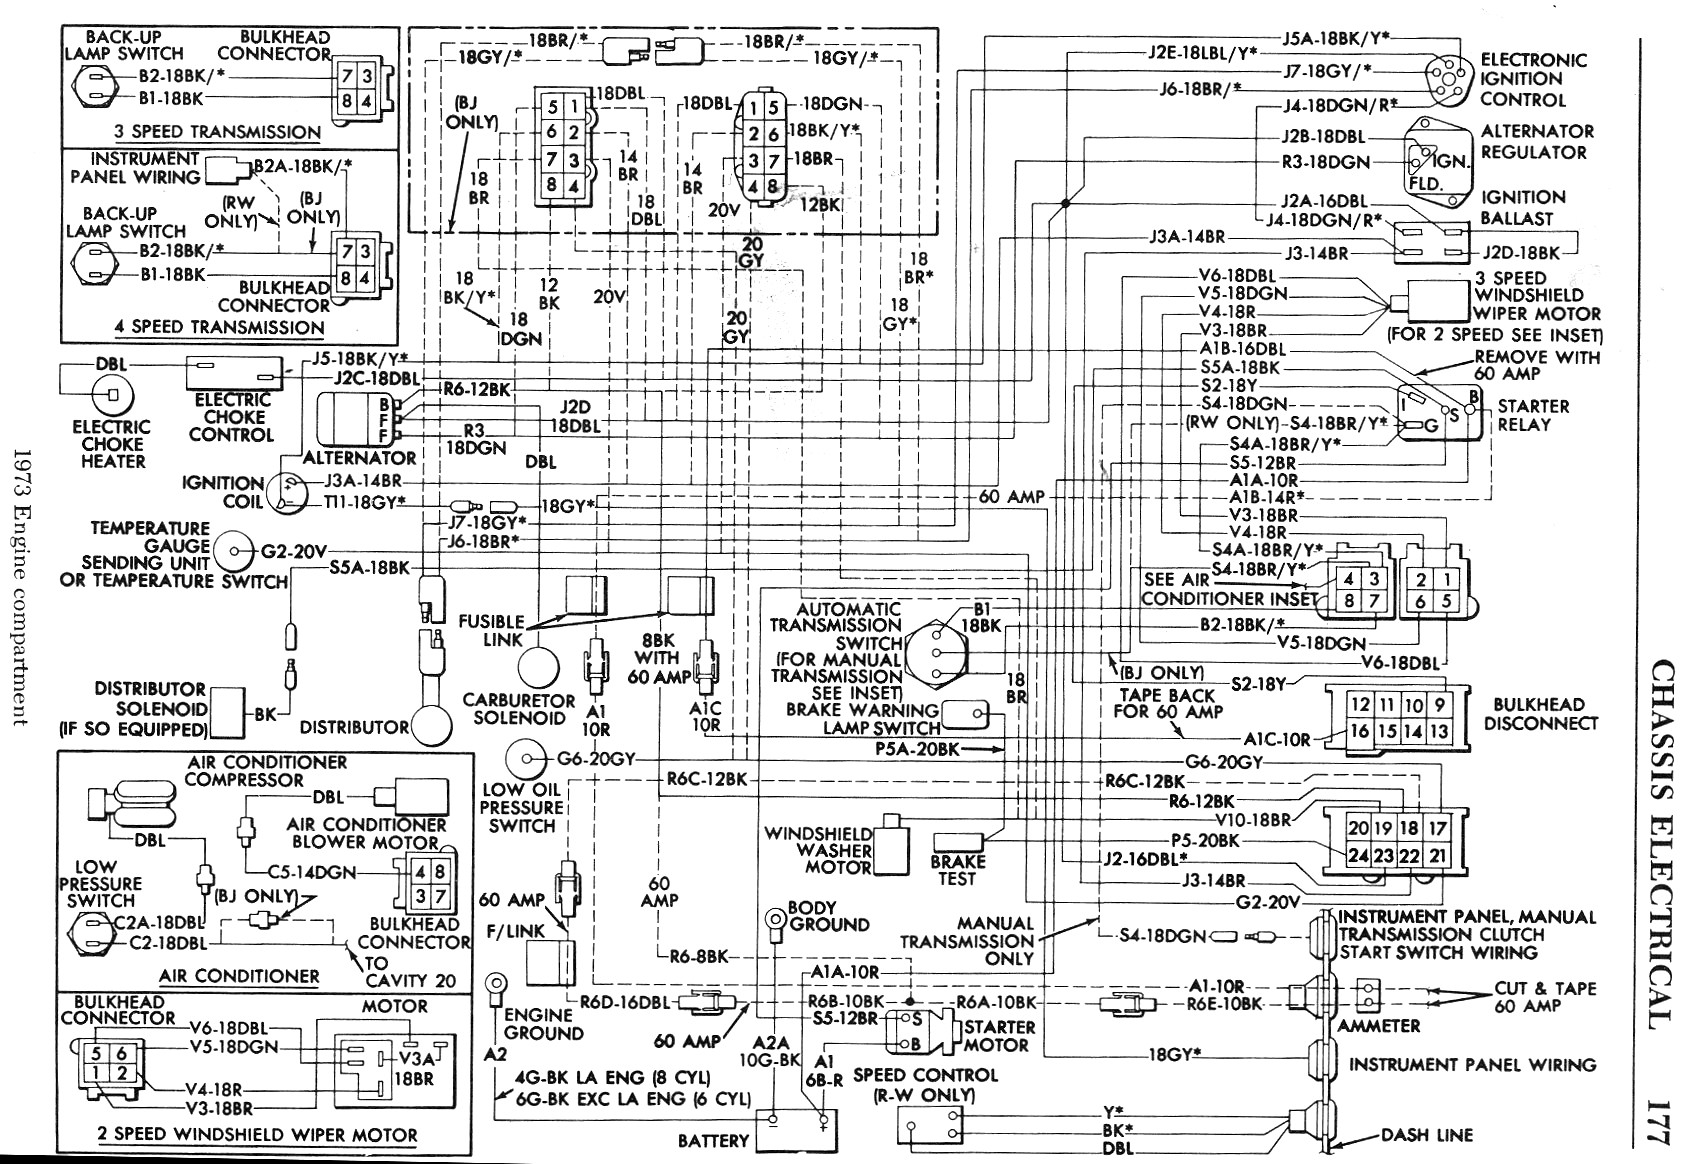 B Bodyengine partmentwiringdiagram on 1970 chevy alternator wiring diagram